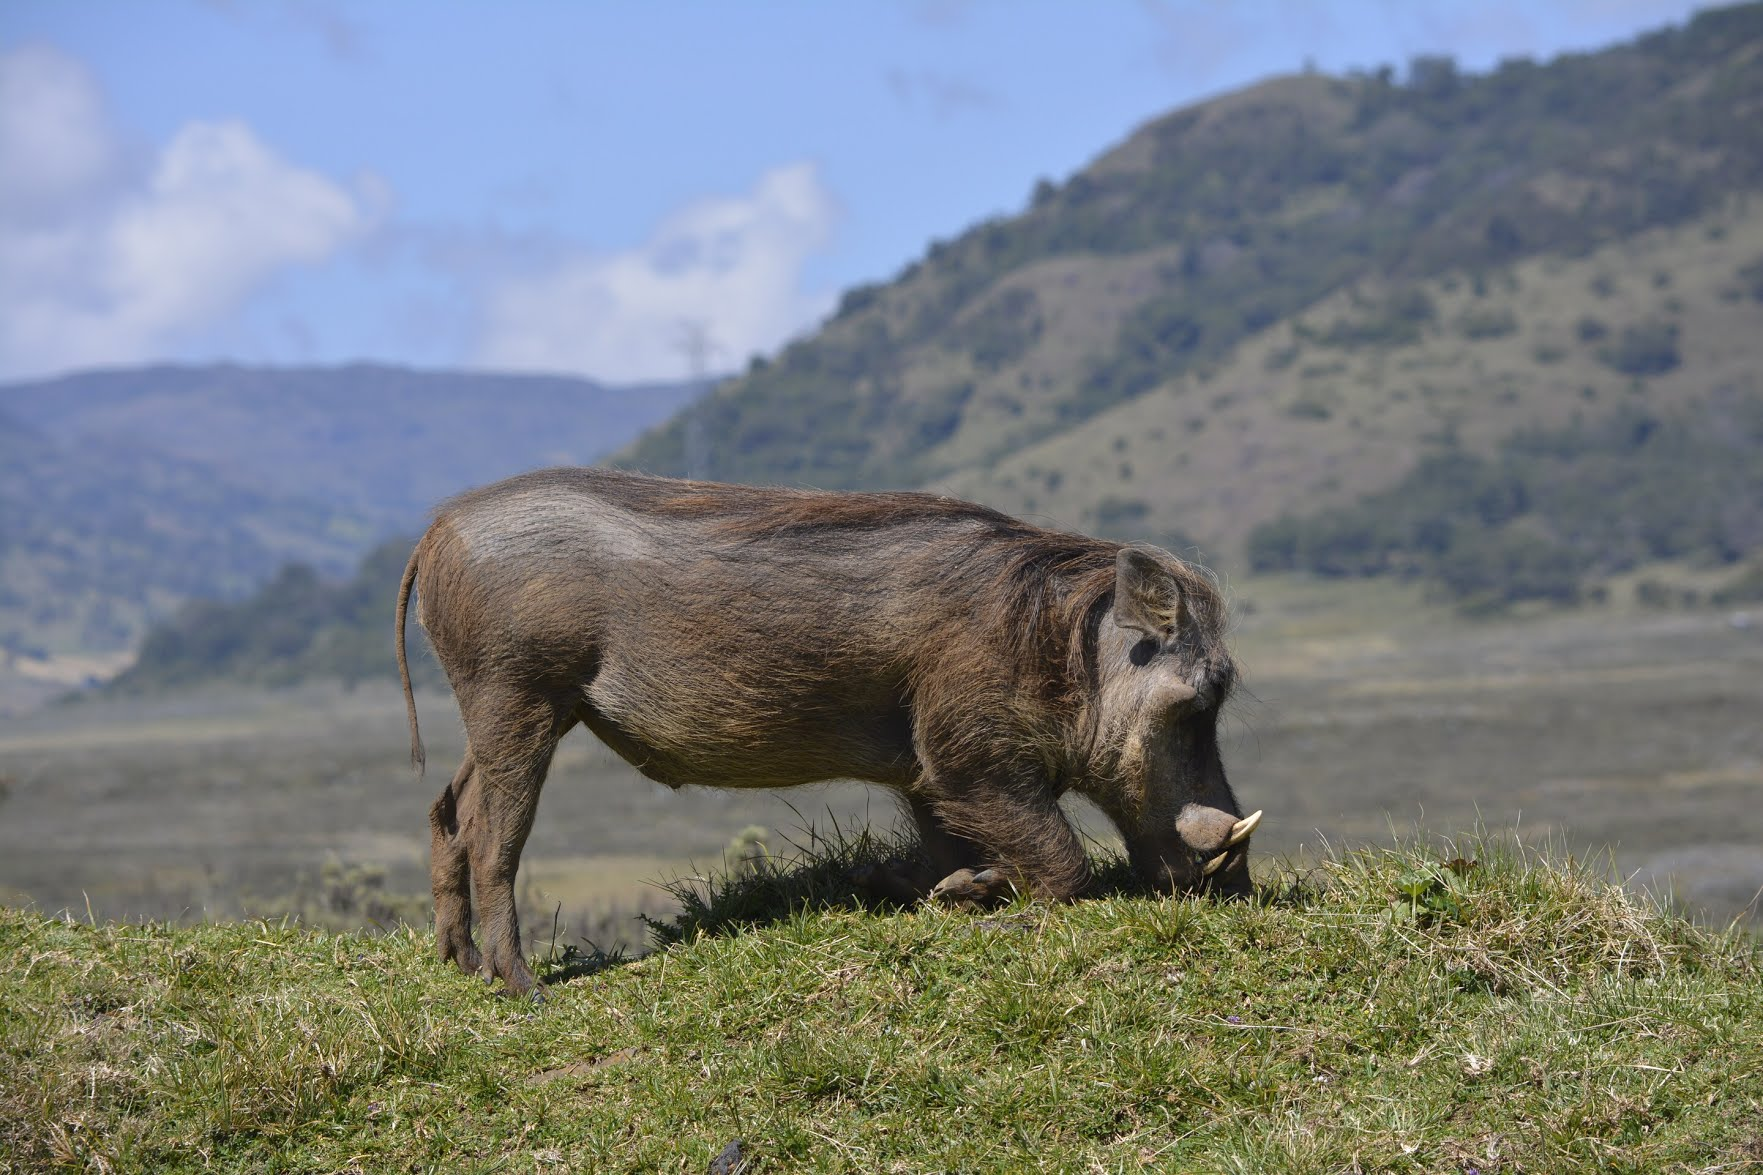 A warthog grazes in the Bale Mountains